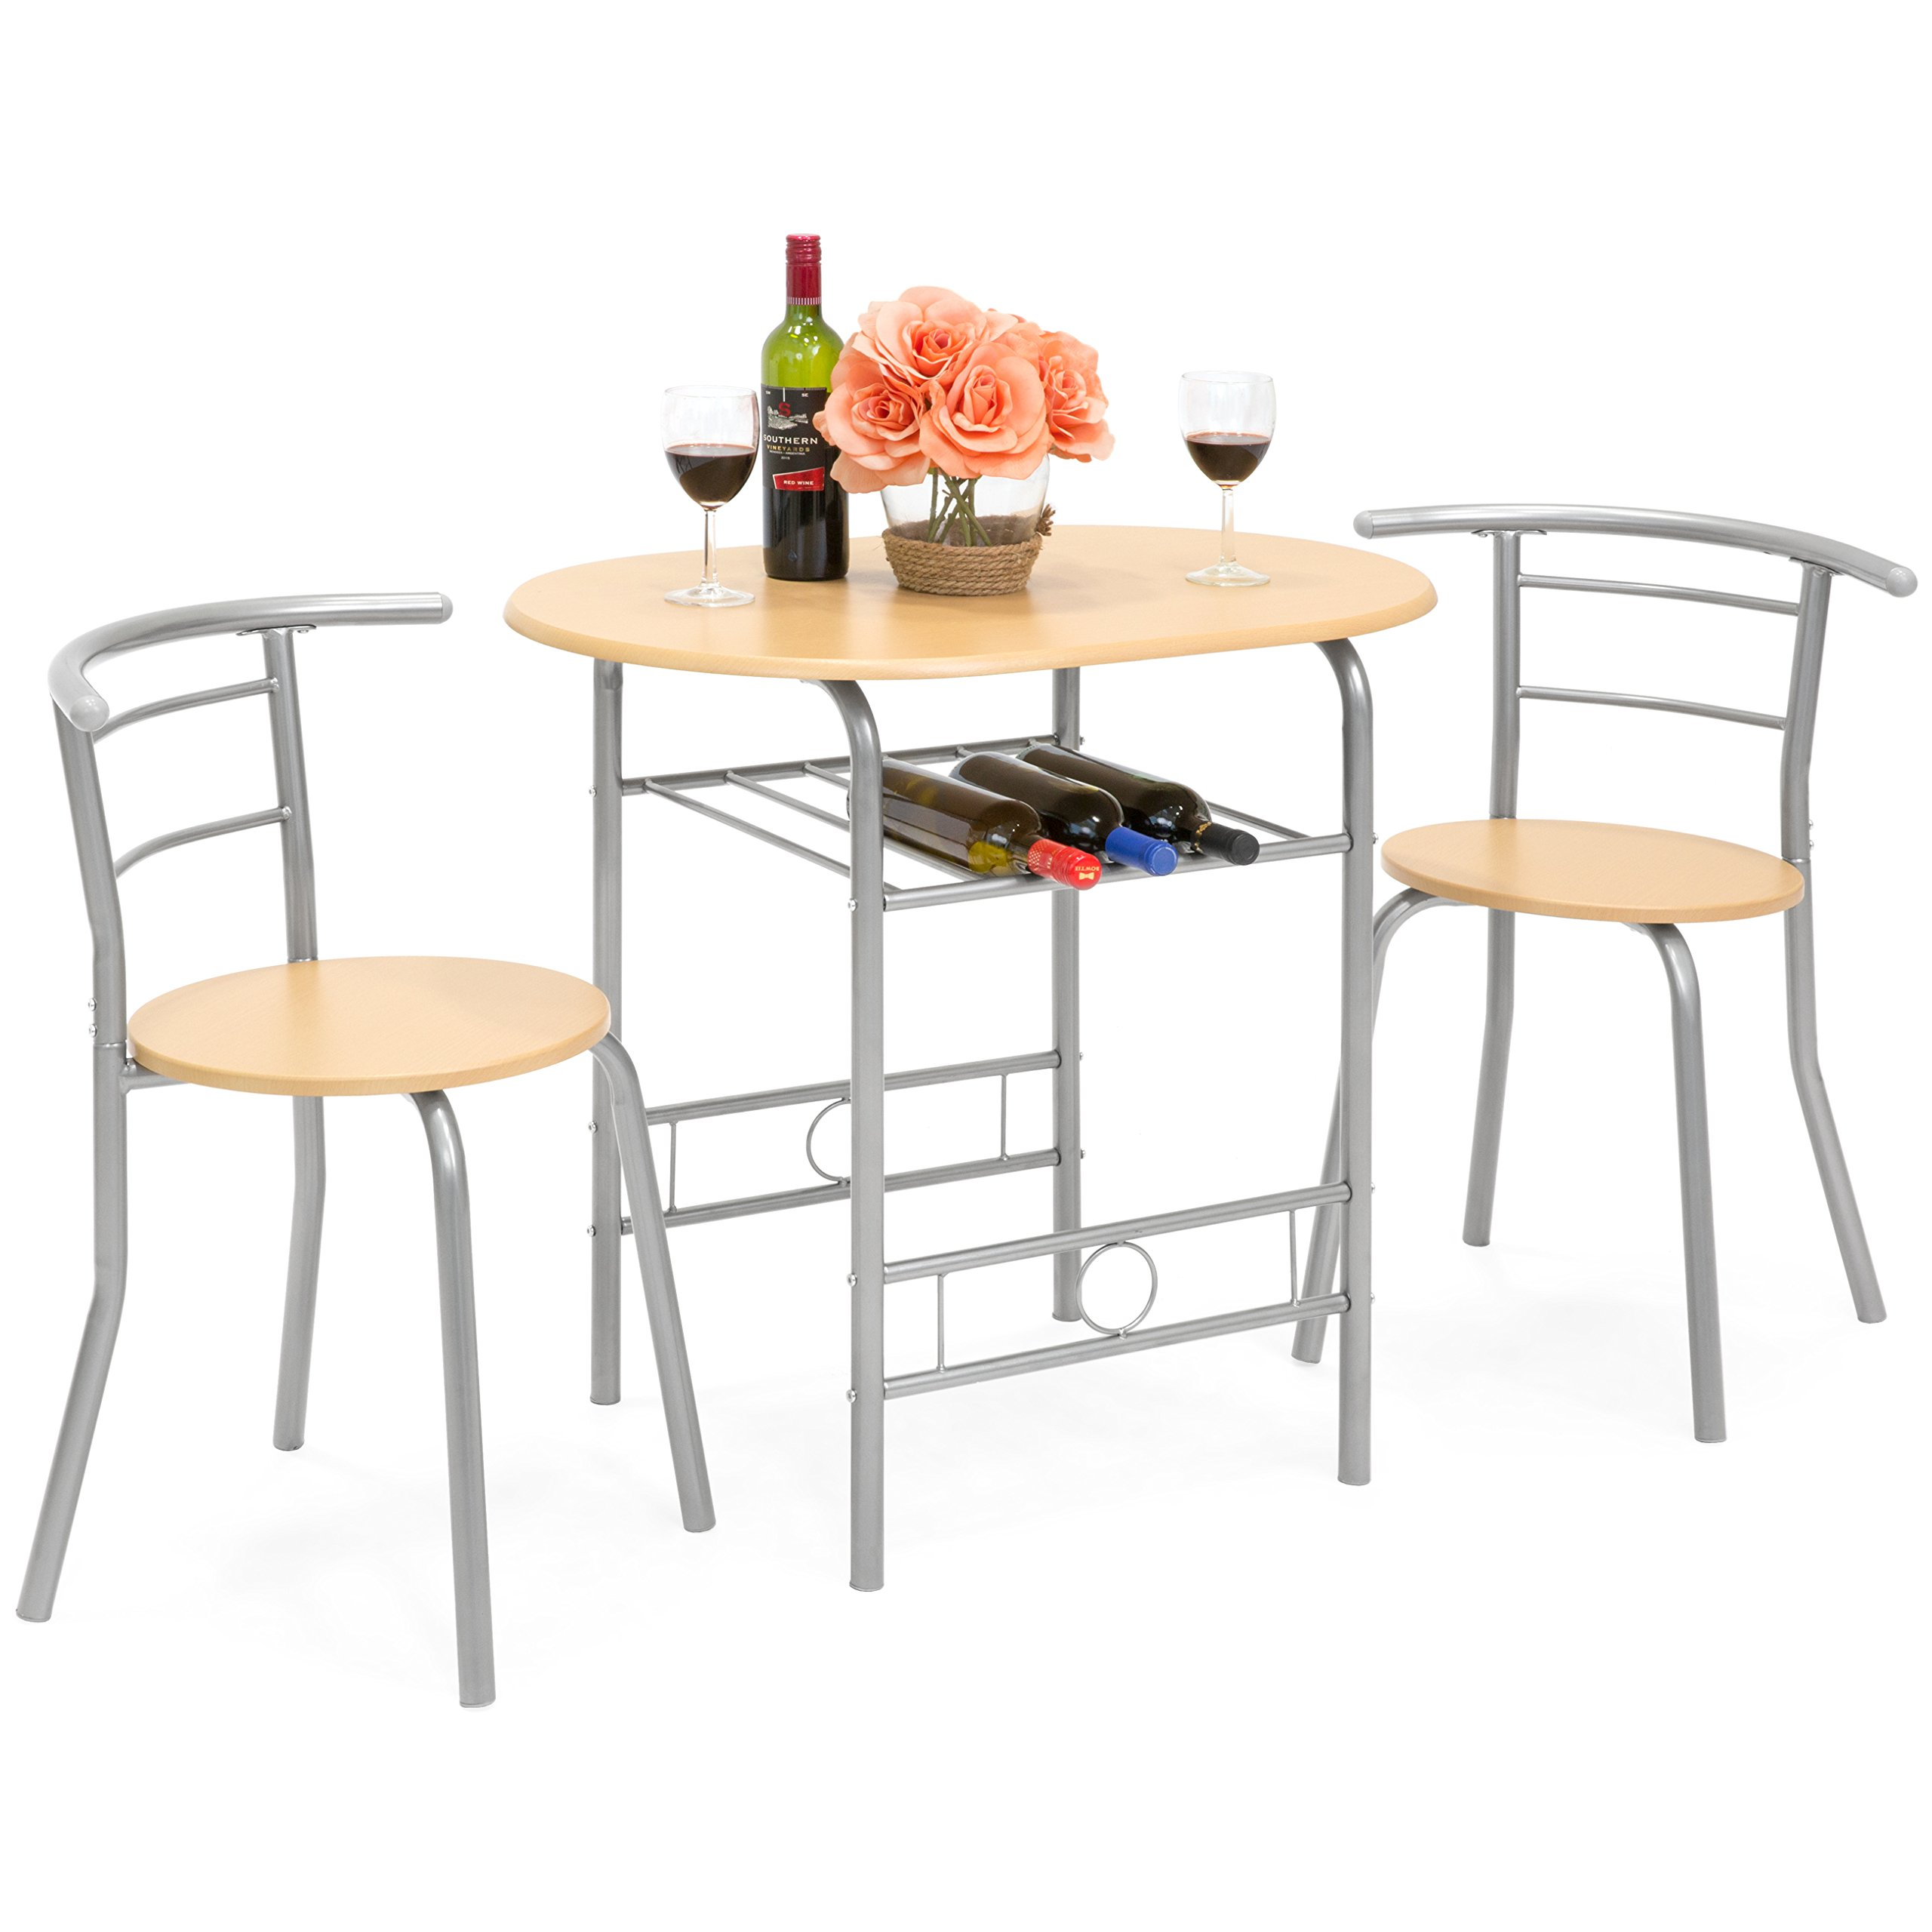 Best Choice Products 3-Piece Wooden Kitchen Dining Room Round Table and Chair Set w/Built-in Wine Rack, Natural by Best Choice Products